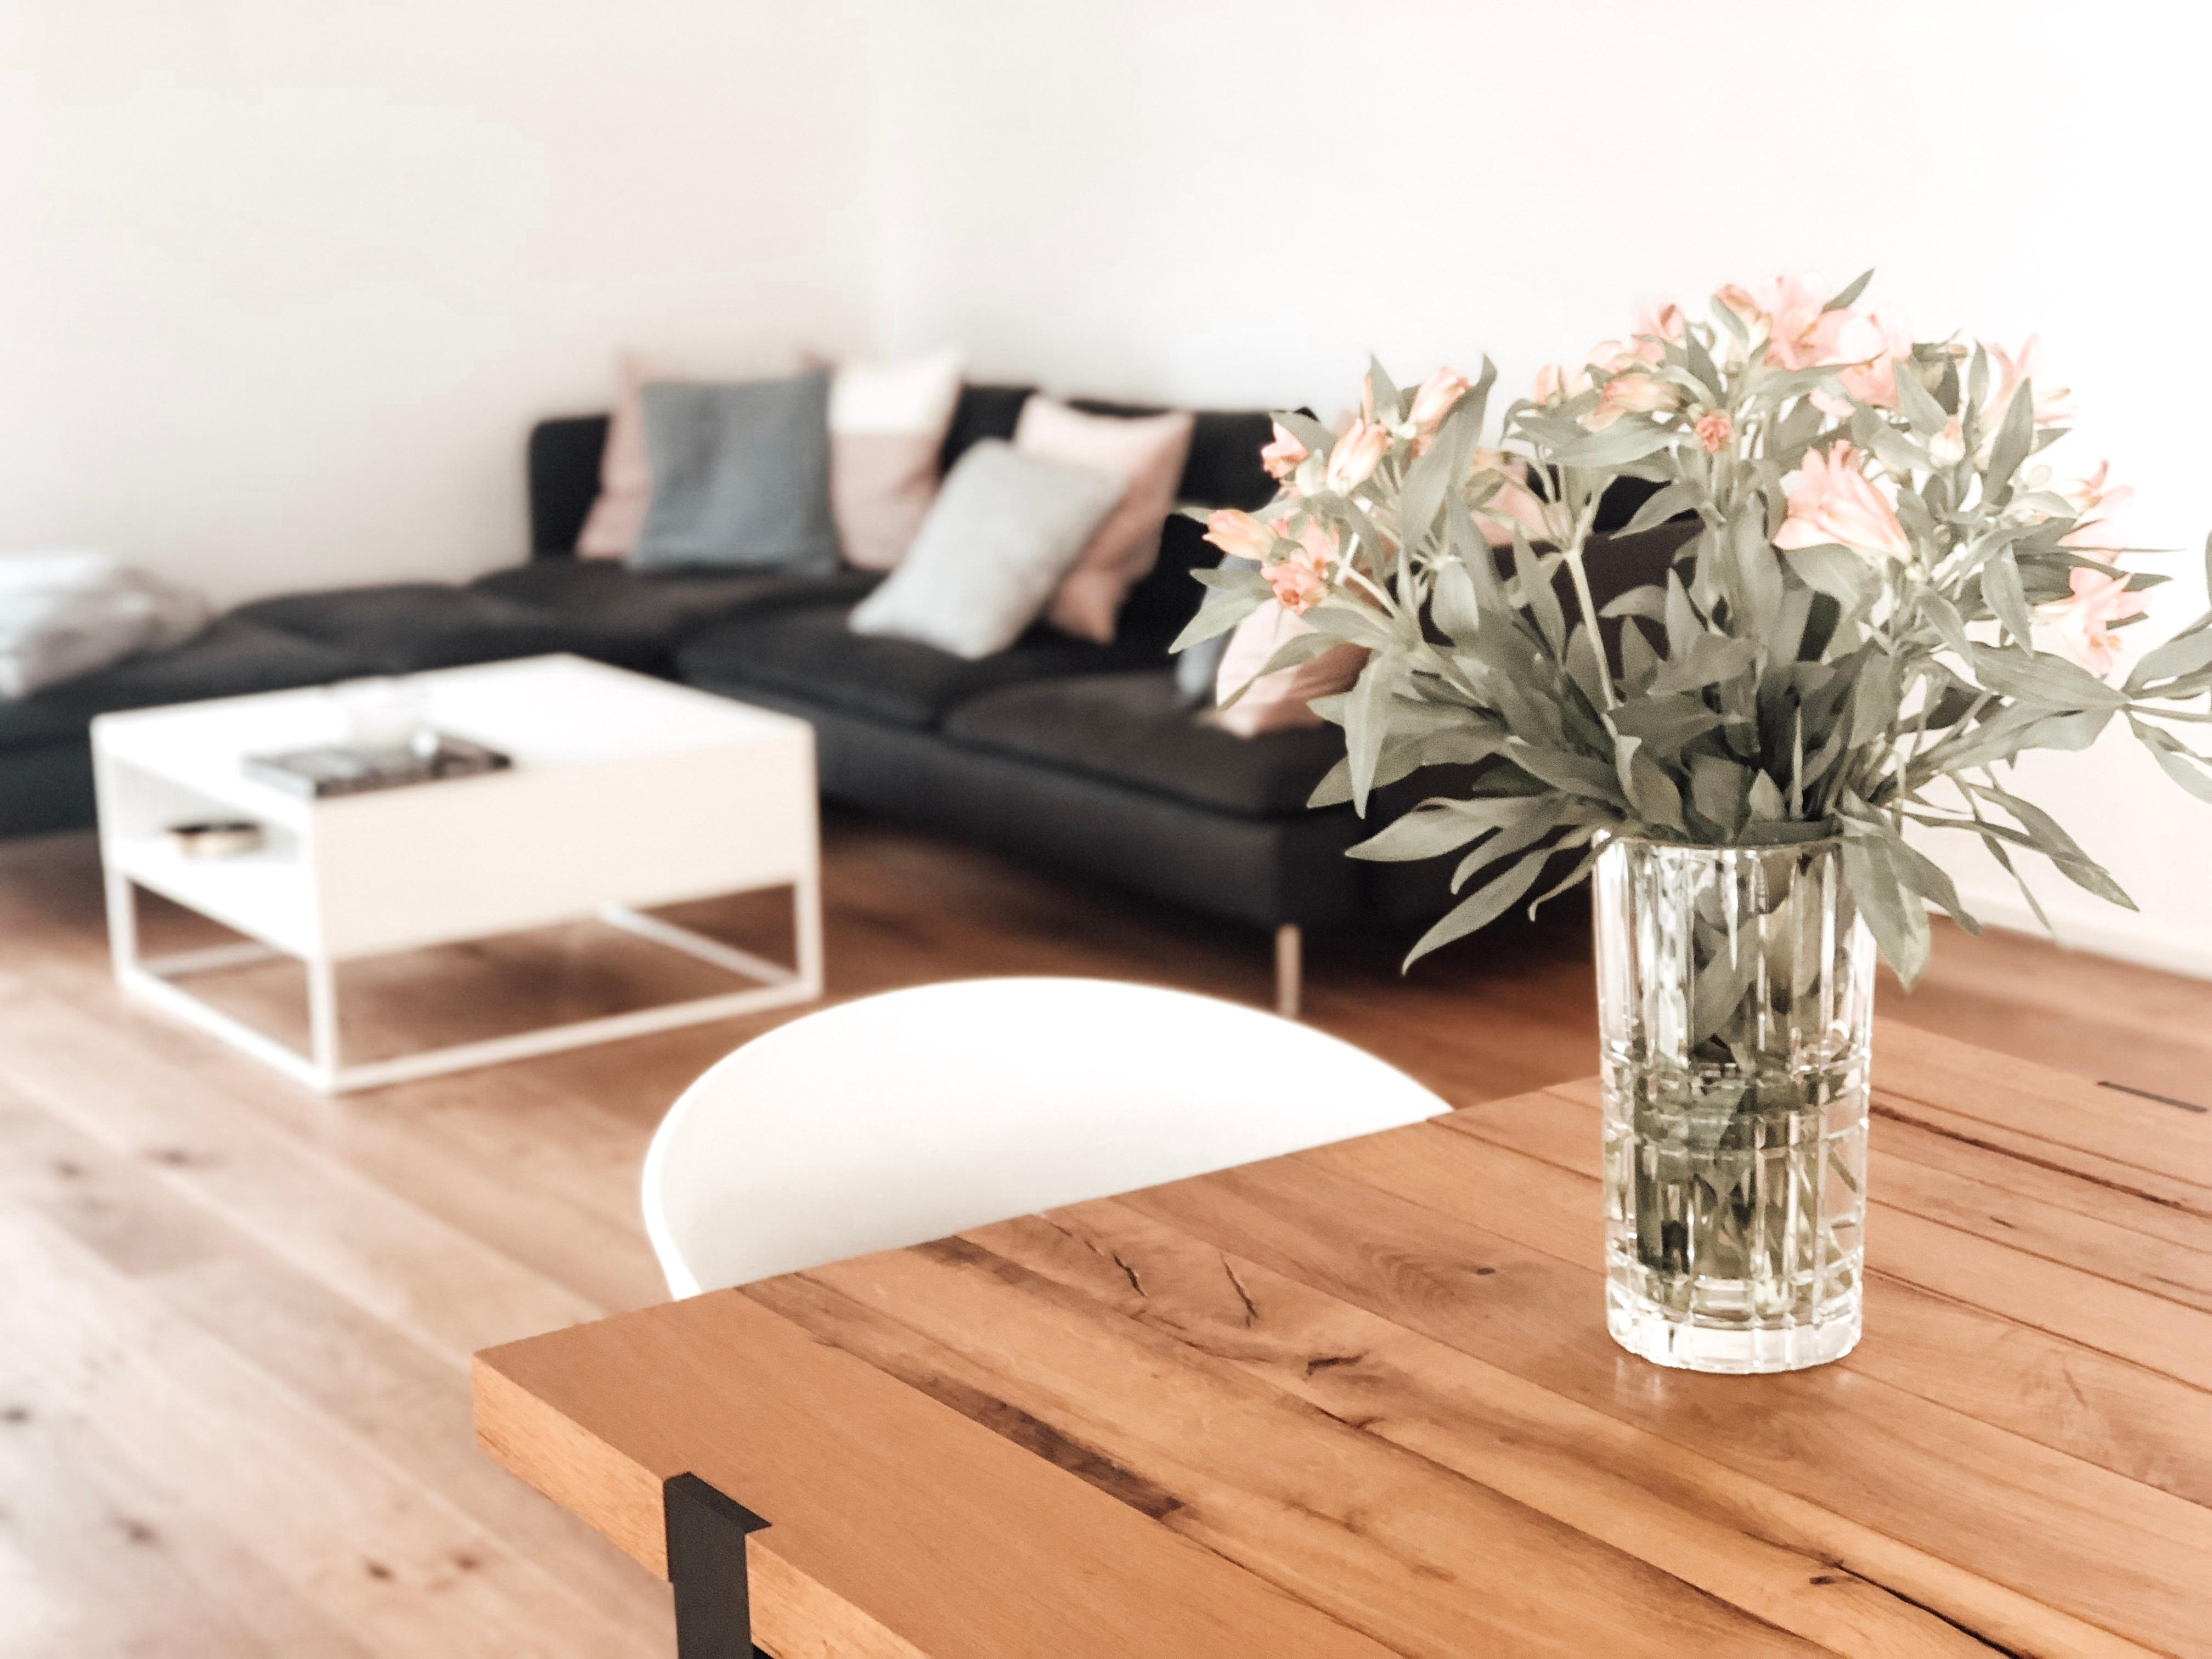 Entspannungsmodus an #flowerlove #chillaxing #livingroom #wohnzimmer #couchstyle #myhappyplace